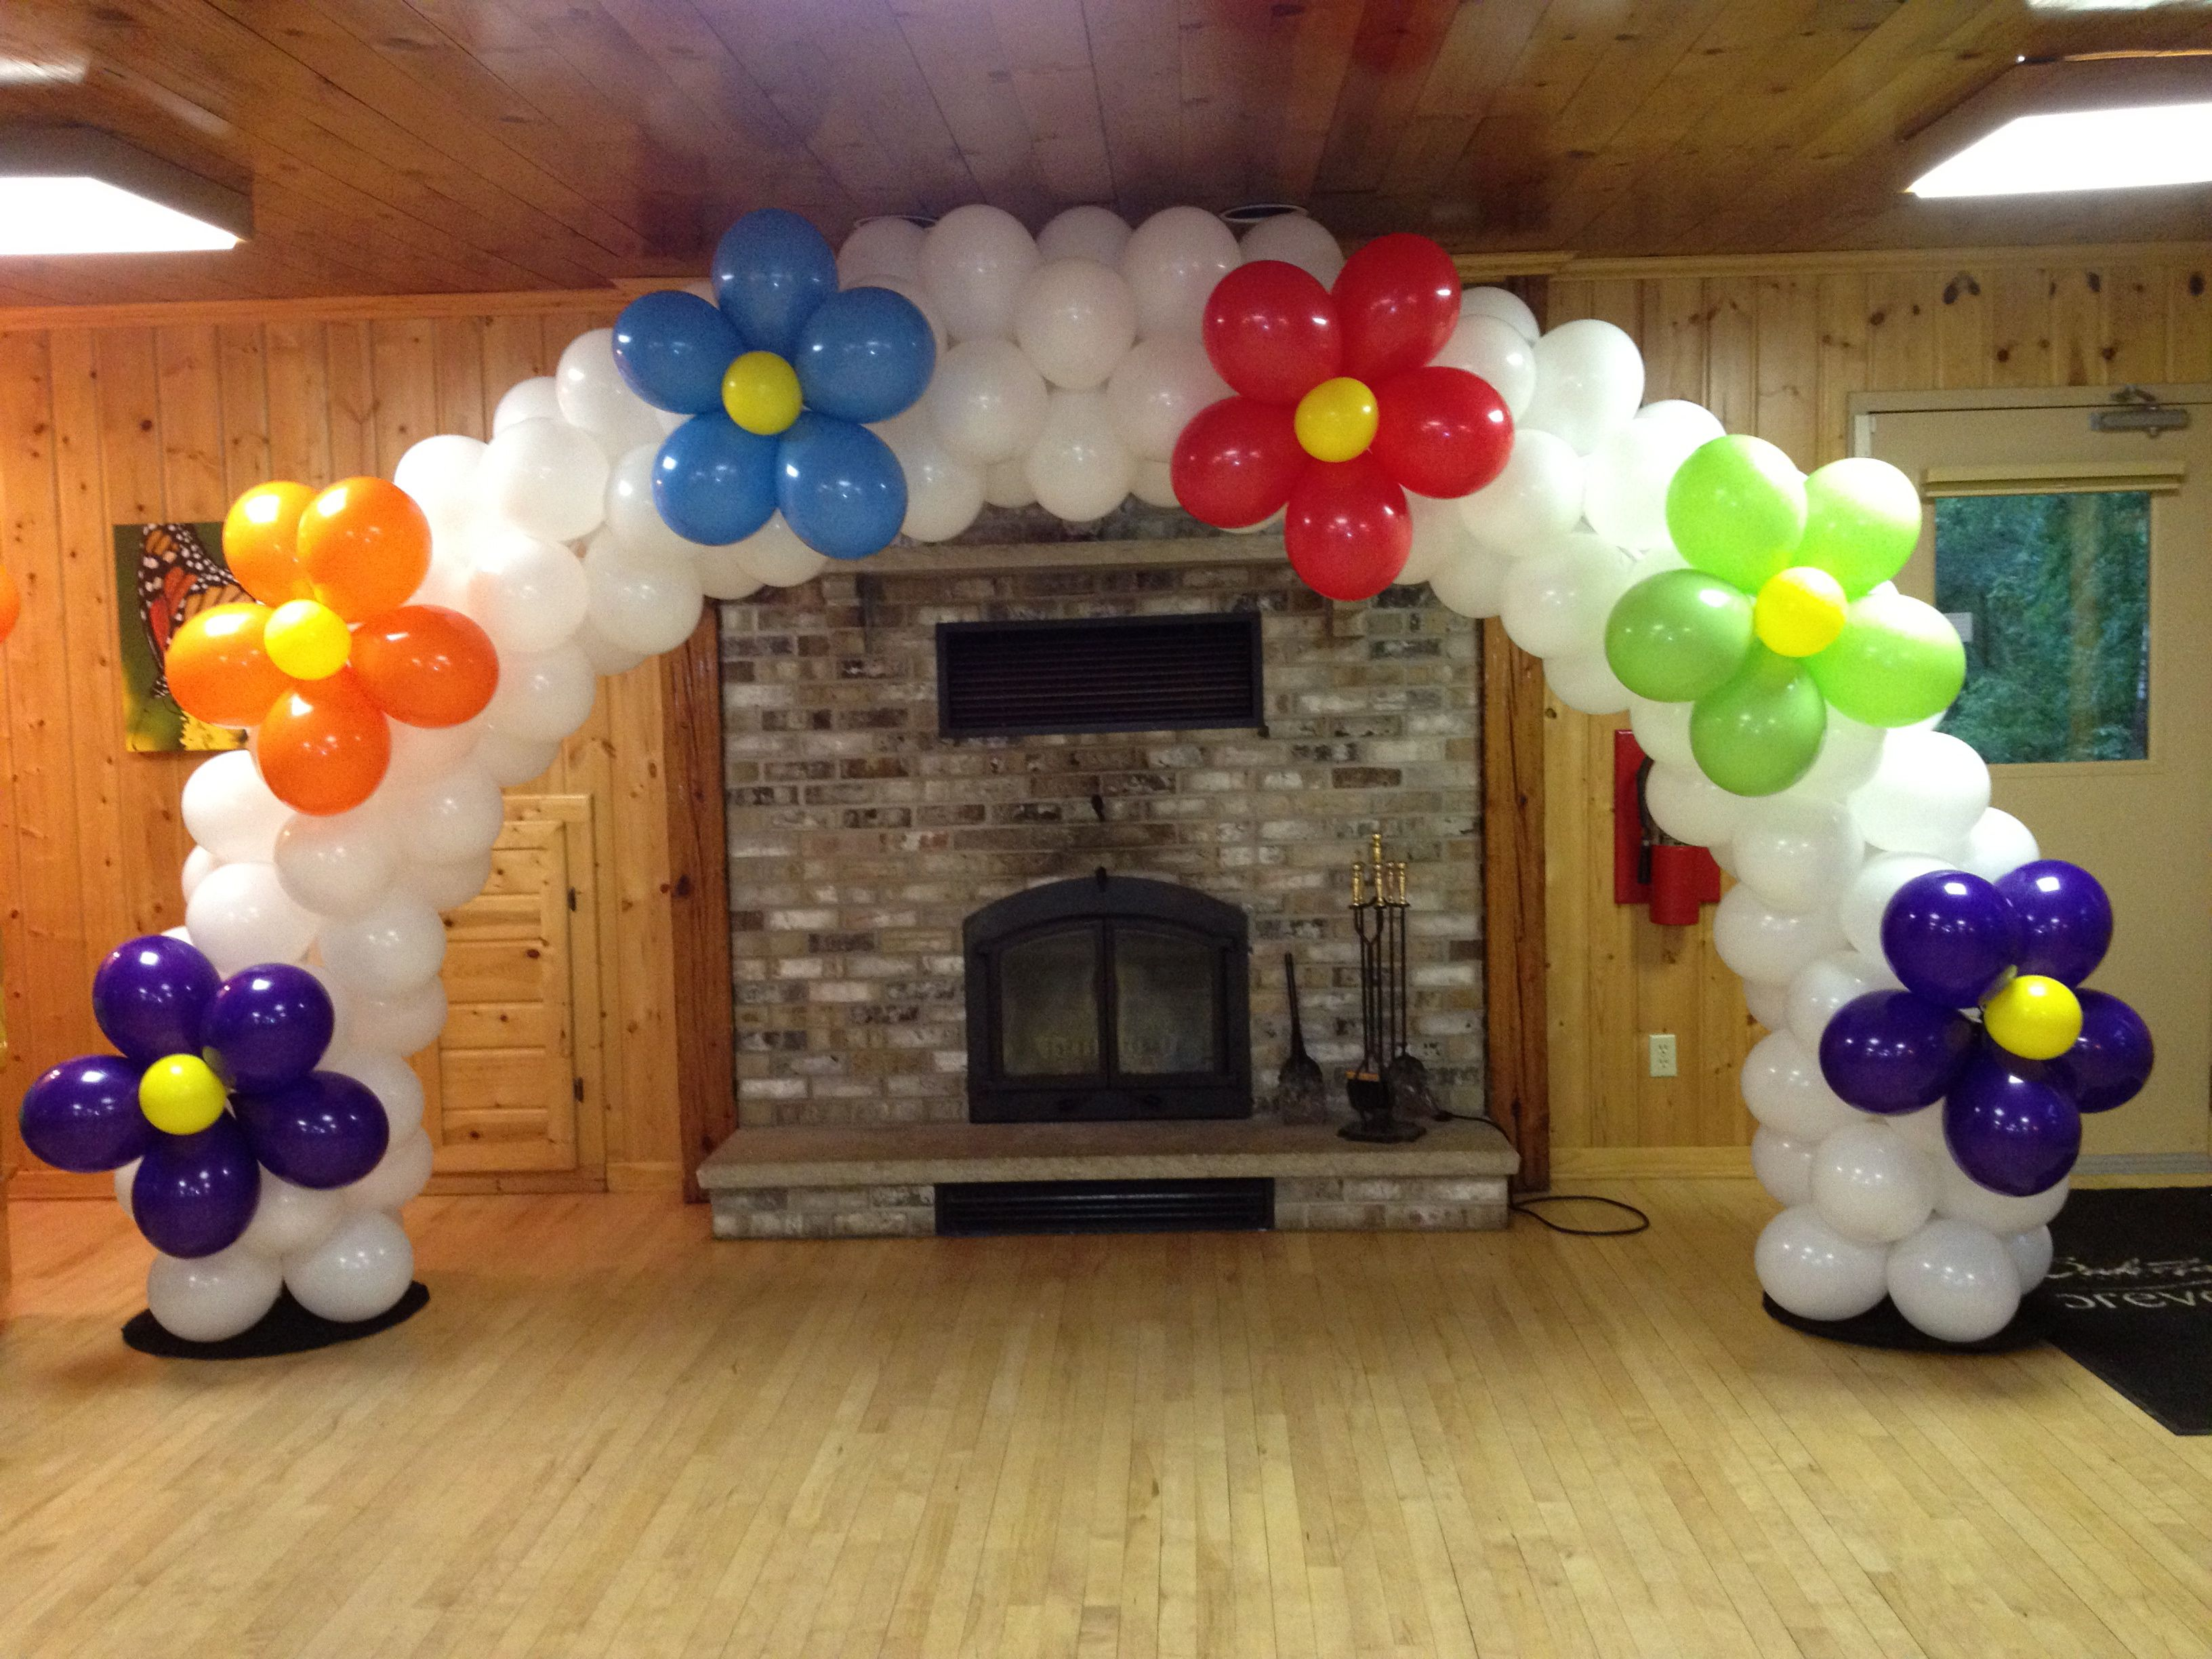 Flower balloon arch gift party ideas pinterest for Balloon arch decoration ideas